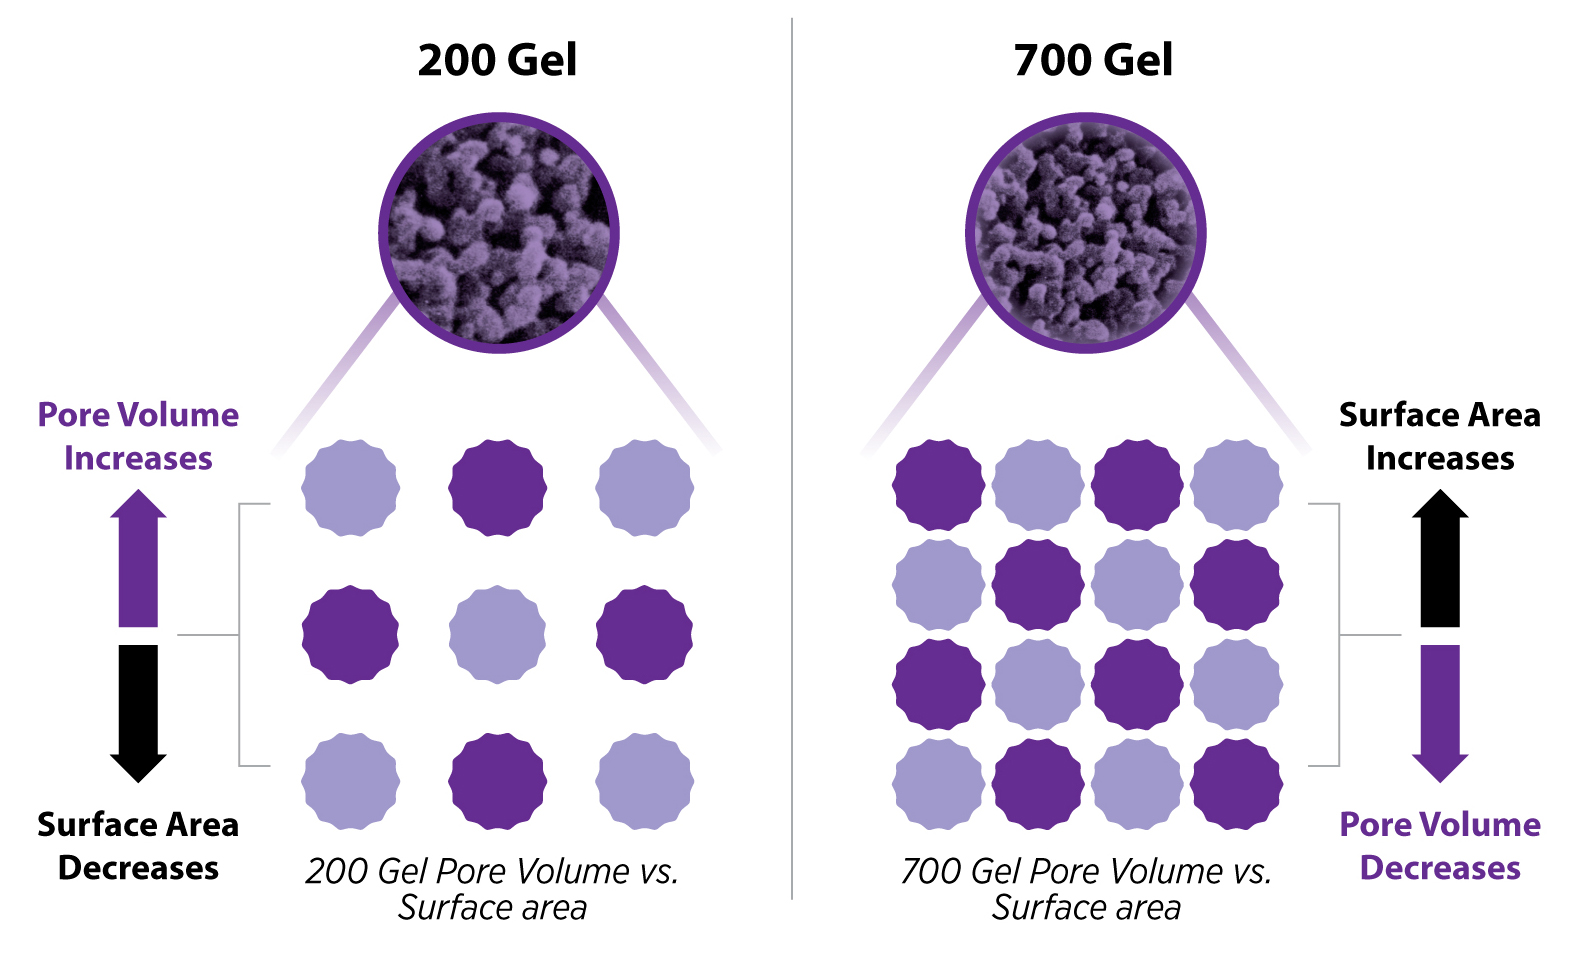 Pore Volume (PV) vs. Surface Area (SA) chart